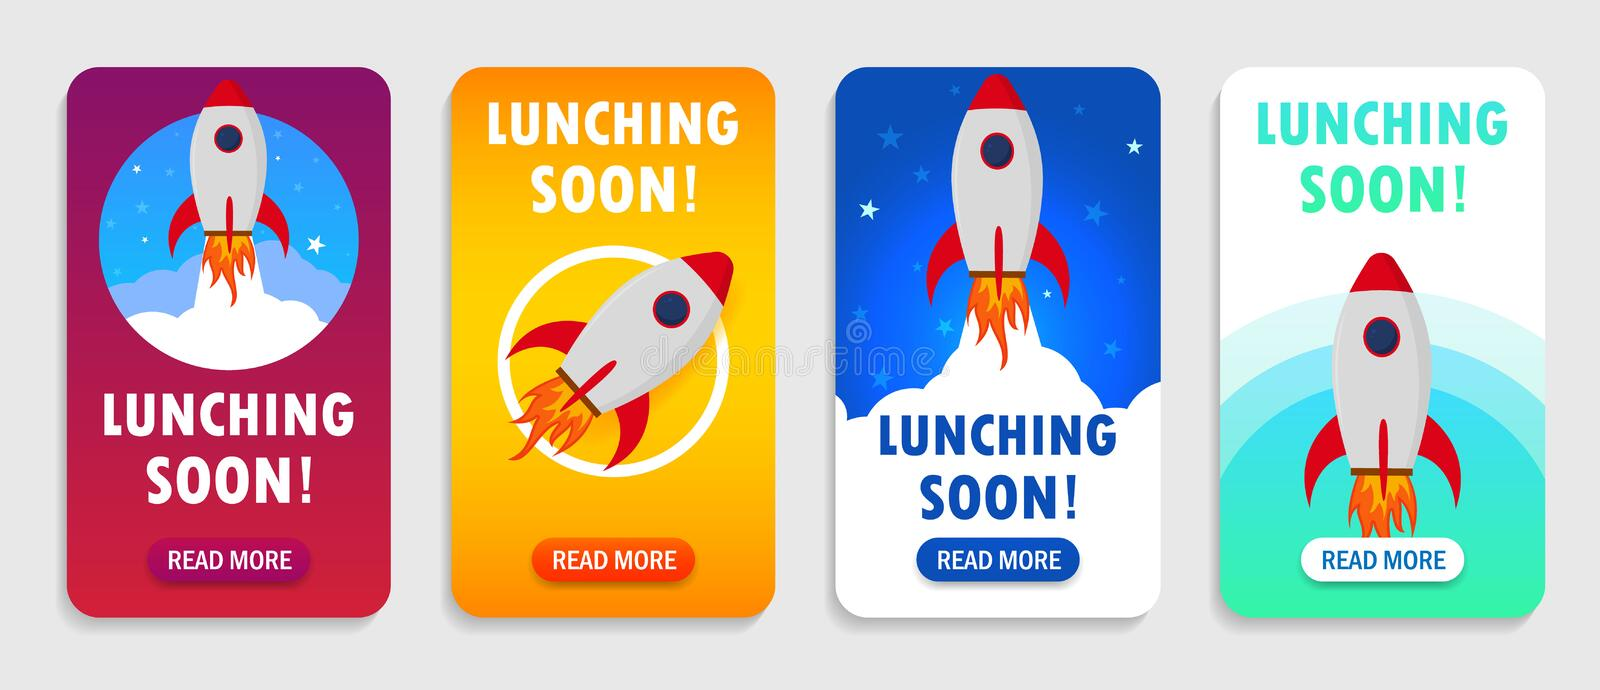 Launch rocket with launching soon interface for mobile app, smart phones. Startup rocket banner with launching soon.Shuttle in vector illustration